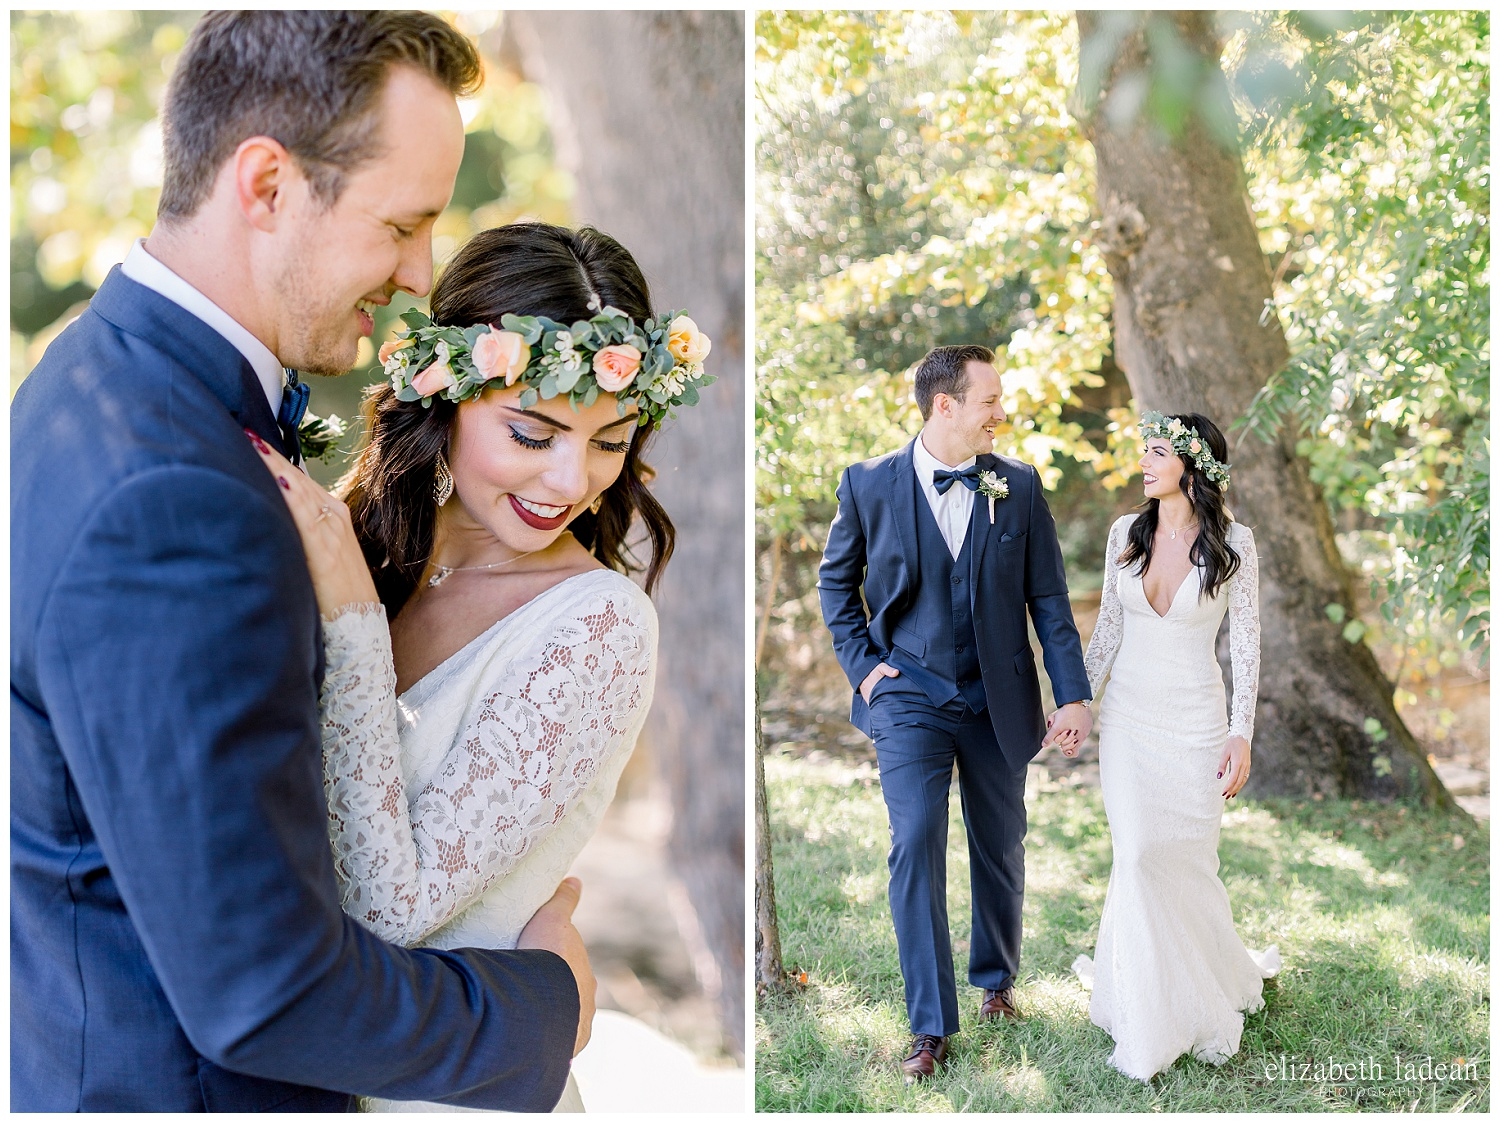 Willow-Creek-Blush-and-Blues-Outdoor-Wedding-Photography-S+Z2018-elizabeth-ladean-photography-photo_0535.jpg